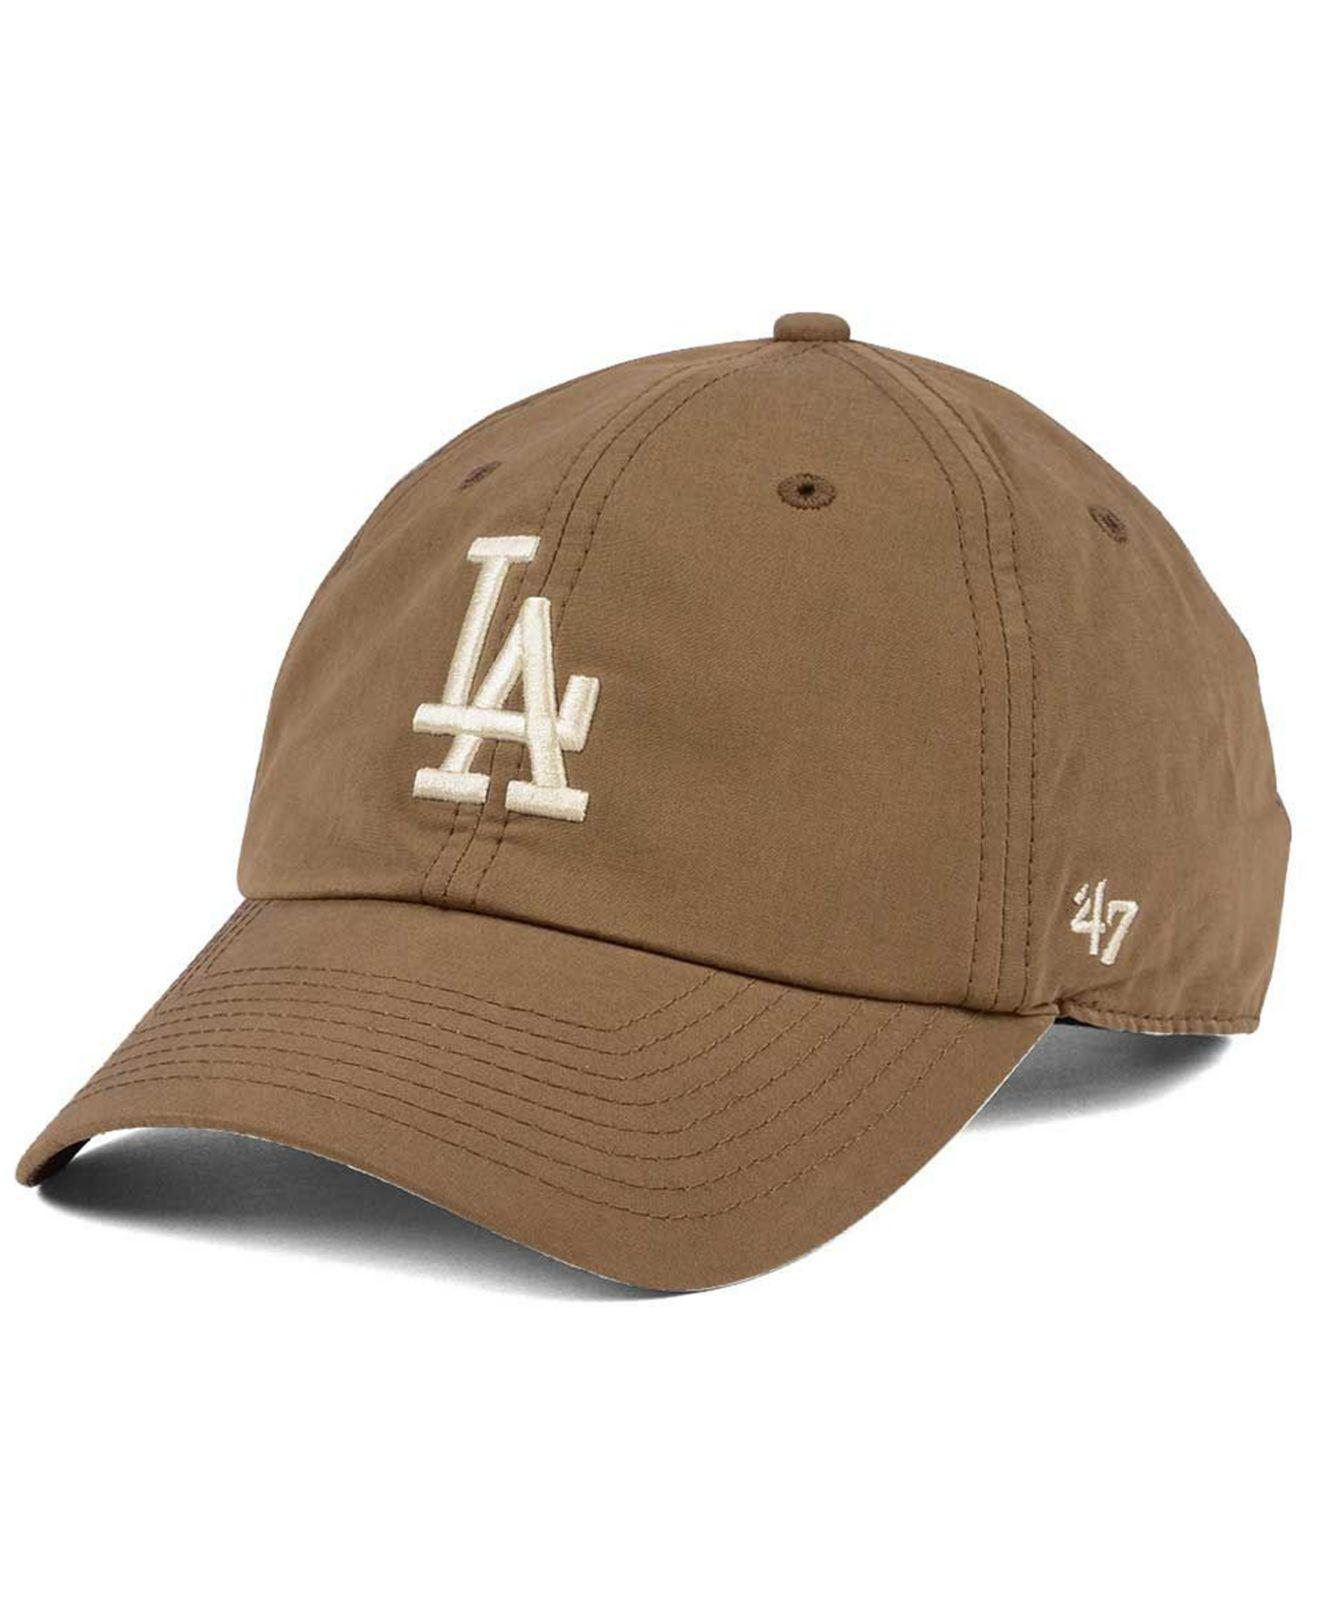 c50bbee7ca6b2 ... new arrivals lyst 47 brand los angeles dodgers harvest clean up cap in  brown 4df2b 4c6fe